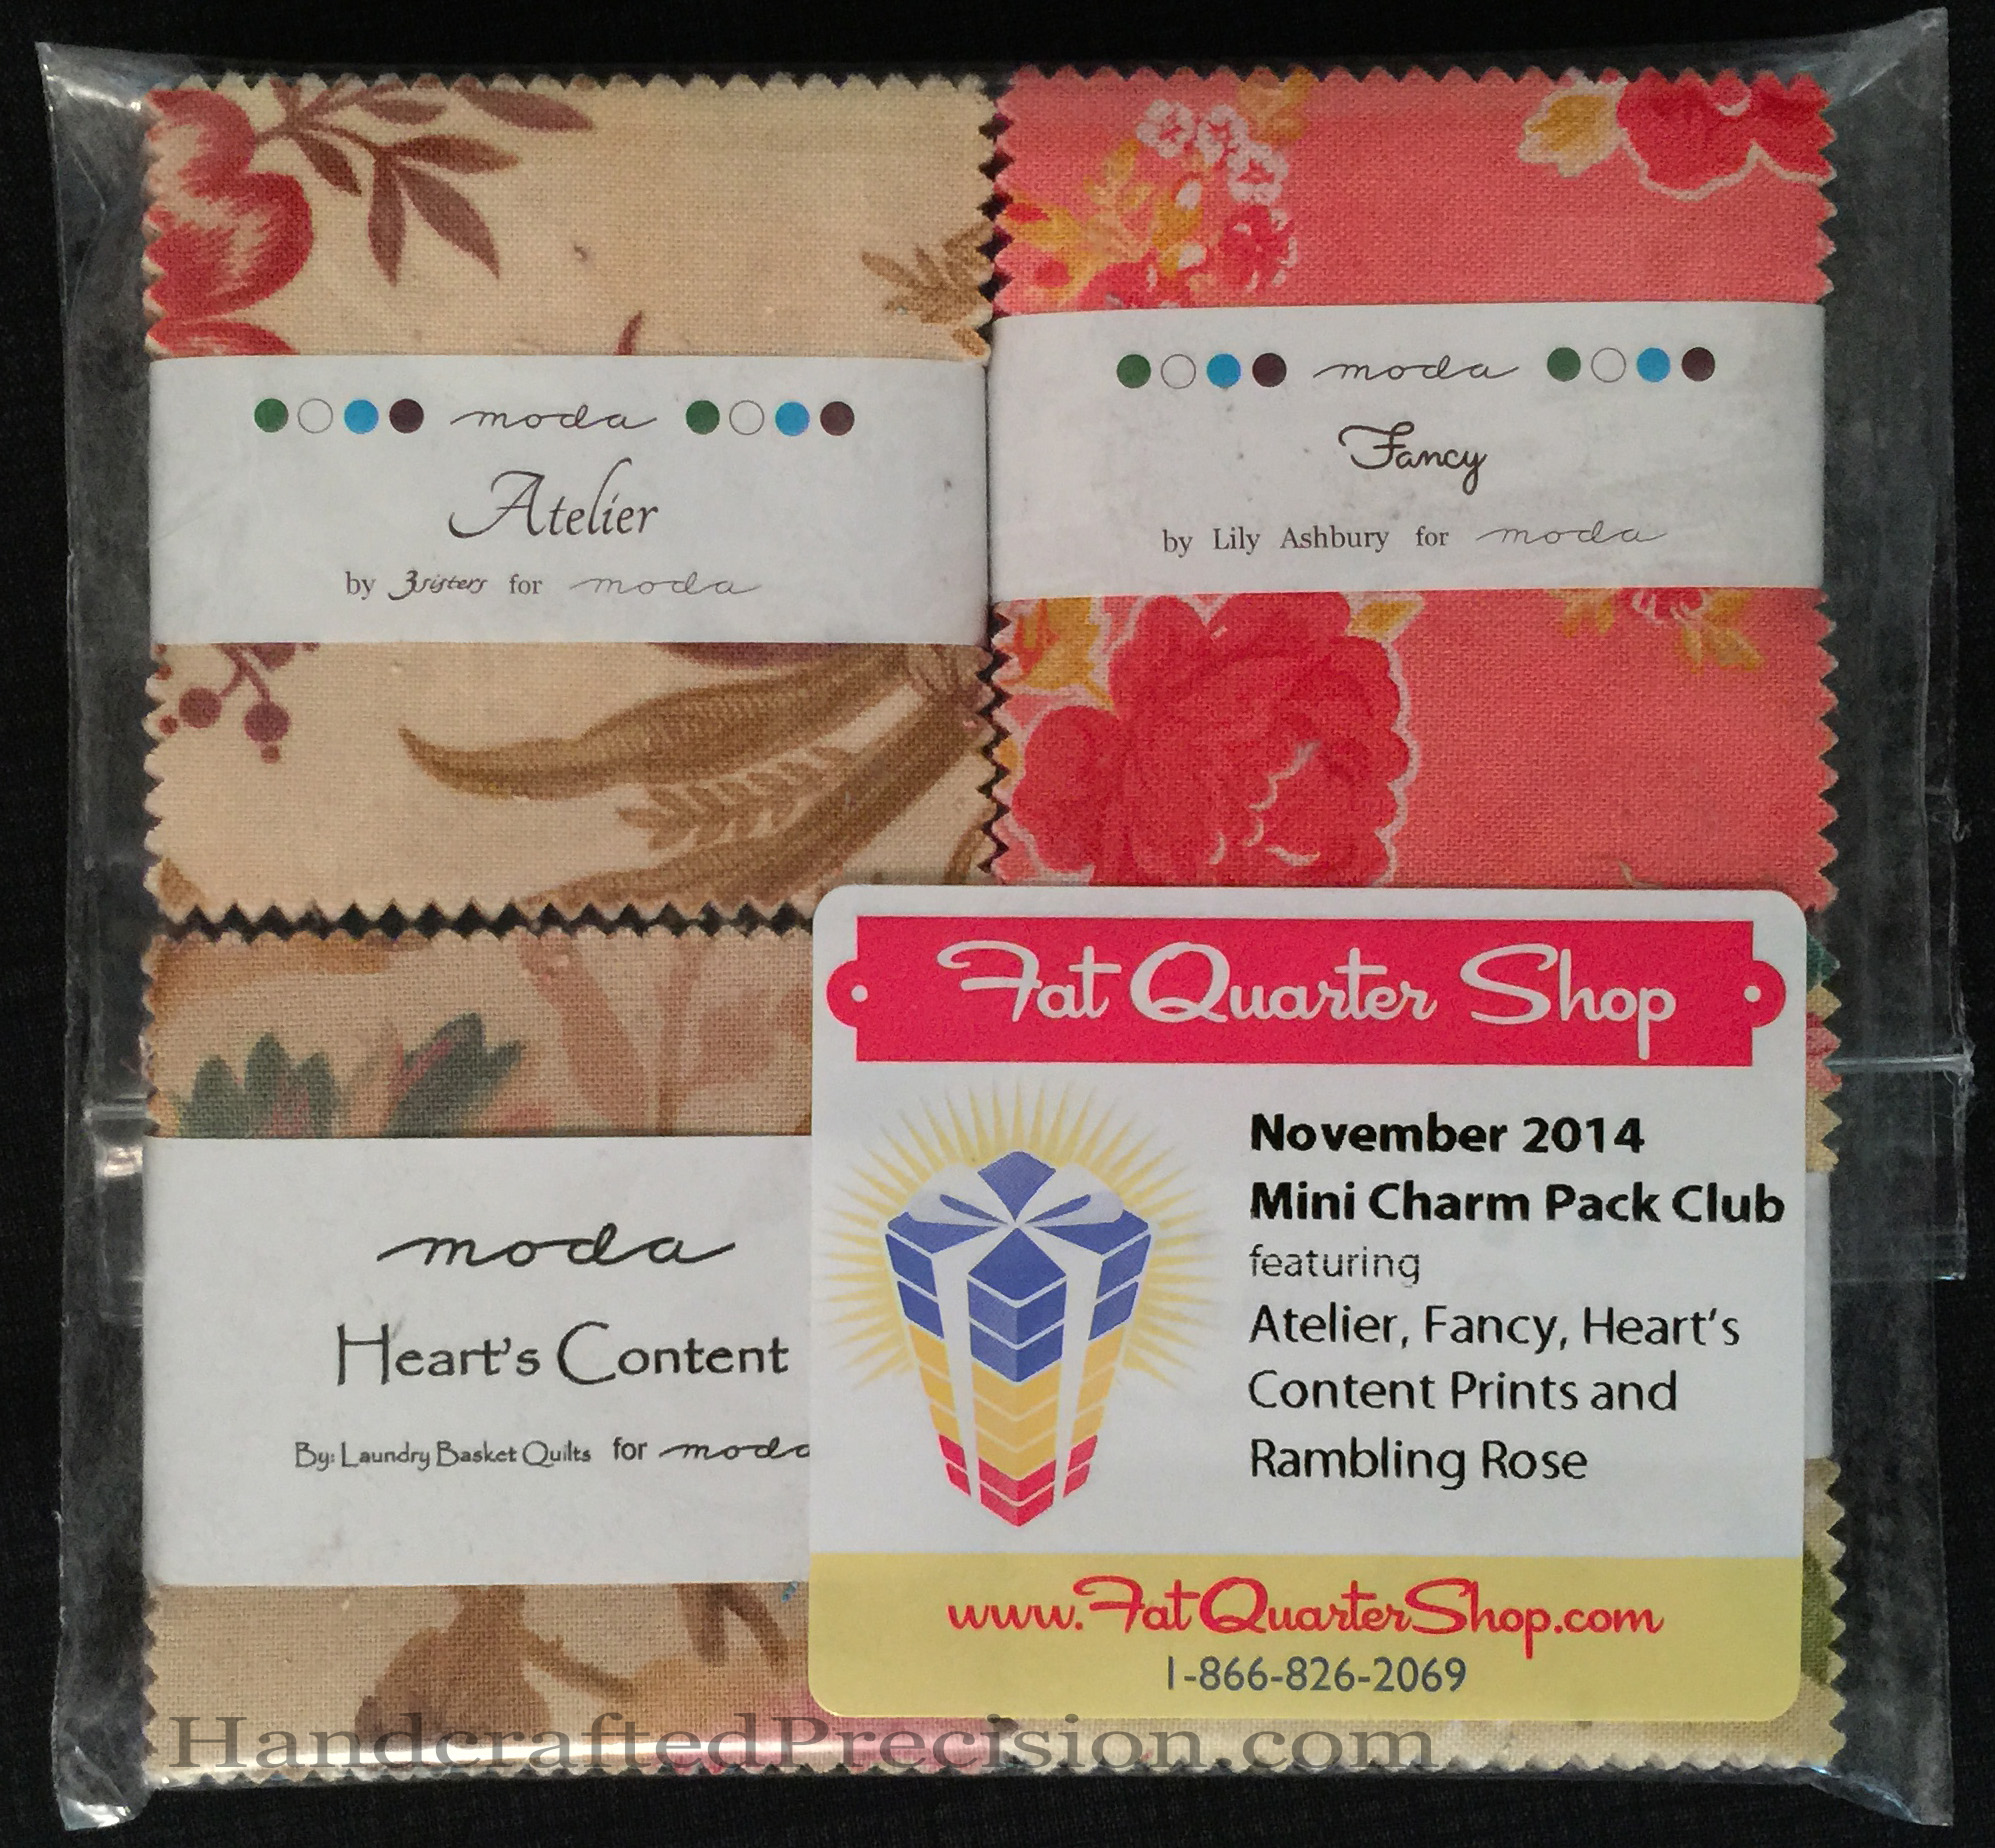 FQS Mini Charm Pack Club Nov 2014 WM